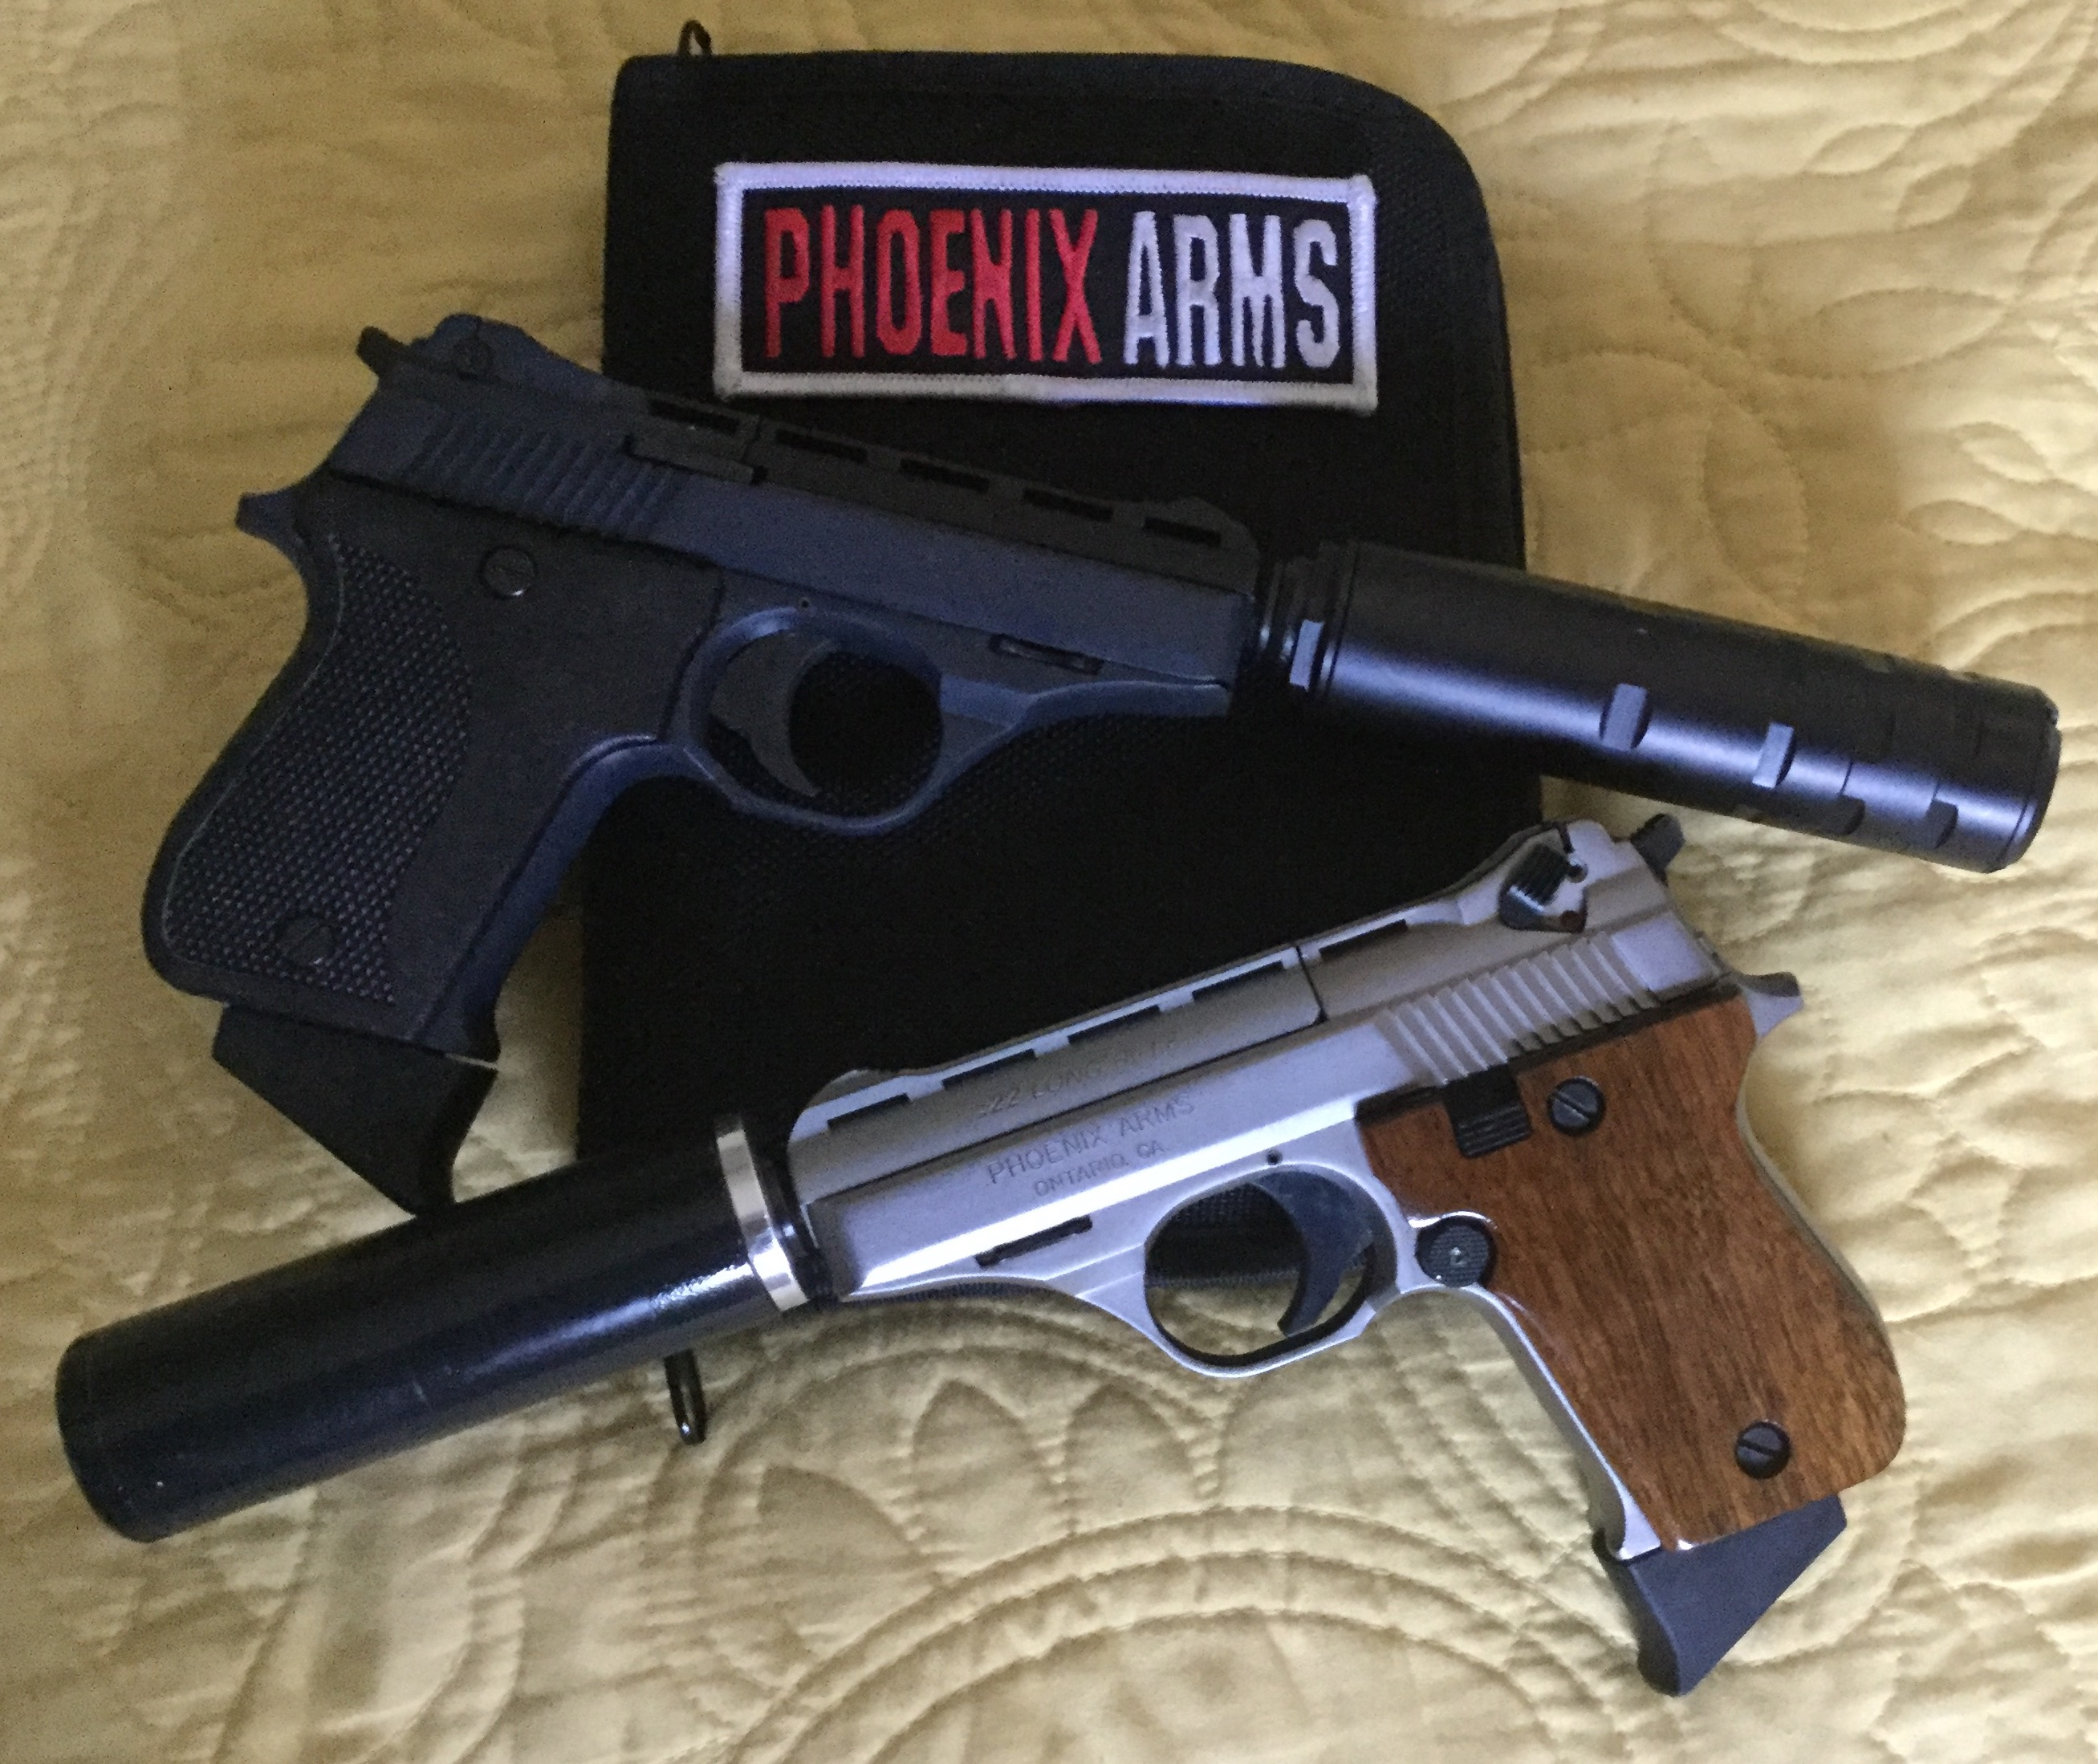 Phoenix Arms HP25 Magazine 25 ACP 9 Round Factory Old Stock for sale online